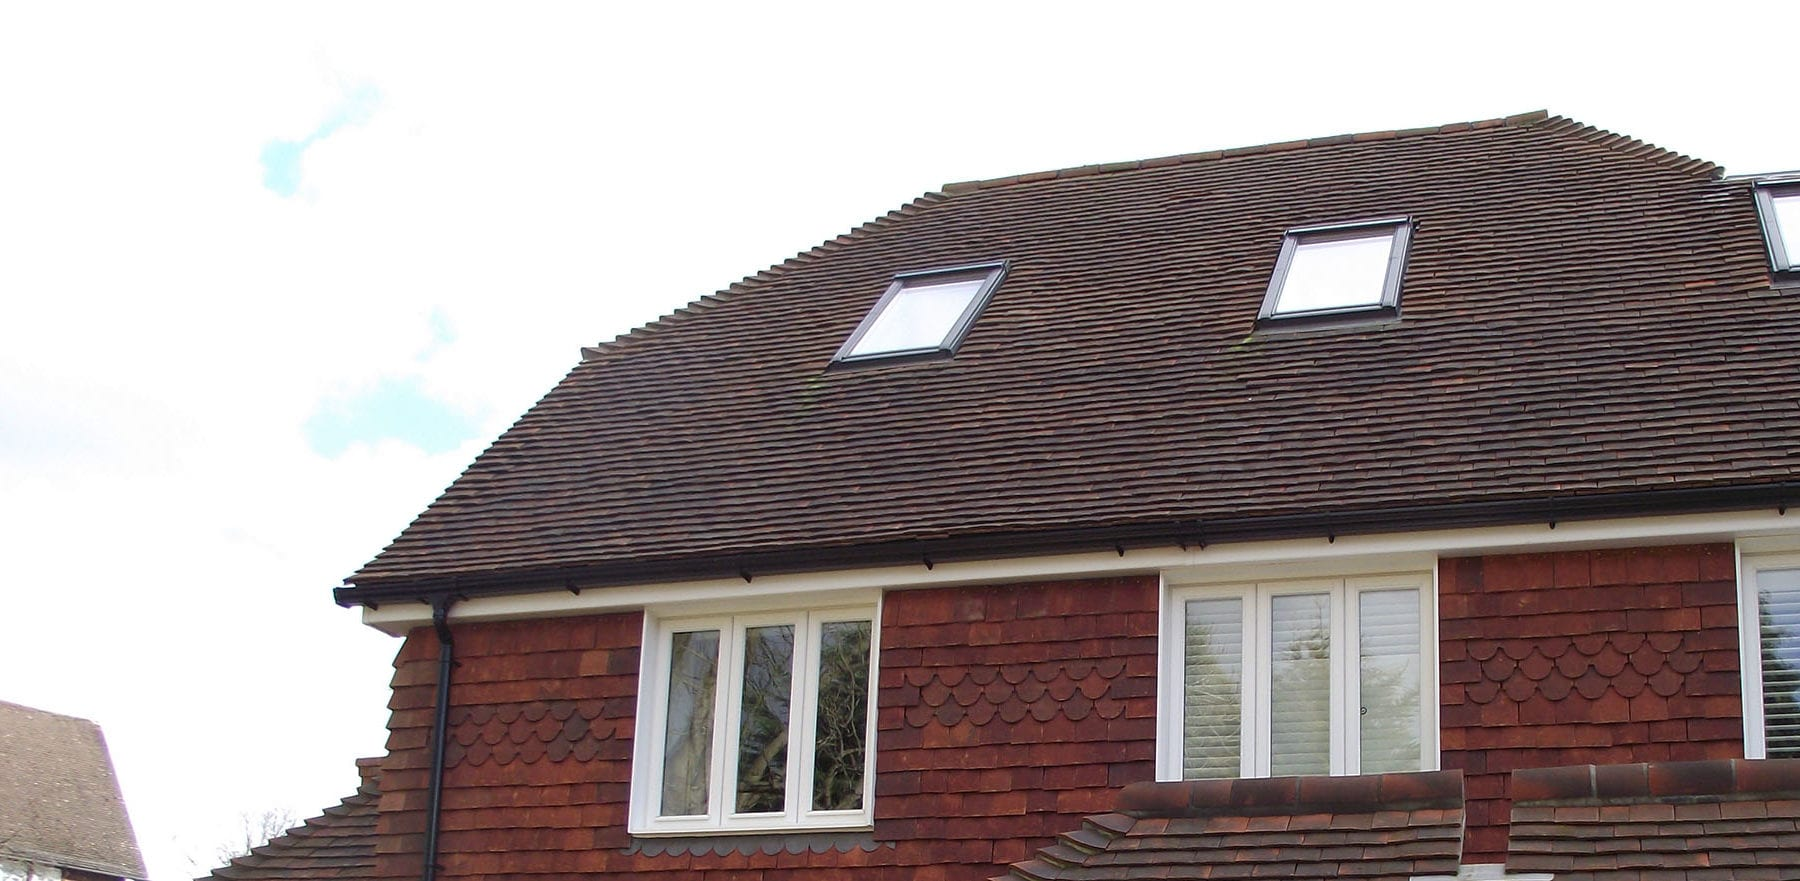 Lifestiles - Handcrafted Autumn Clay Roof Tiles - Seven Oaks, England 3